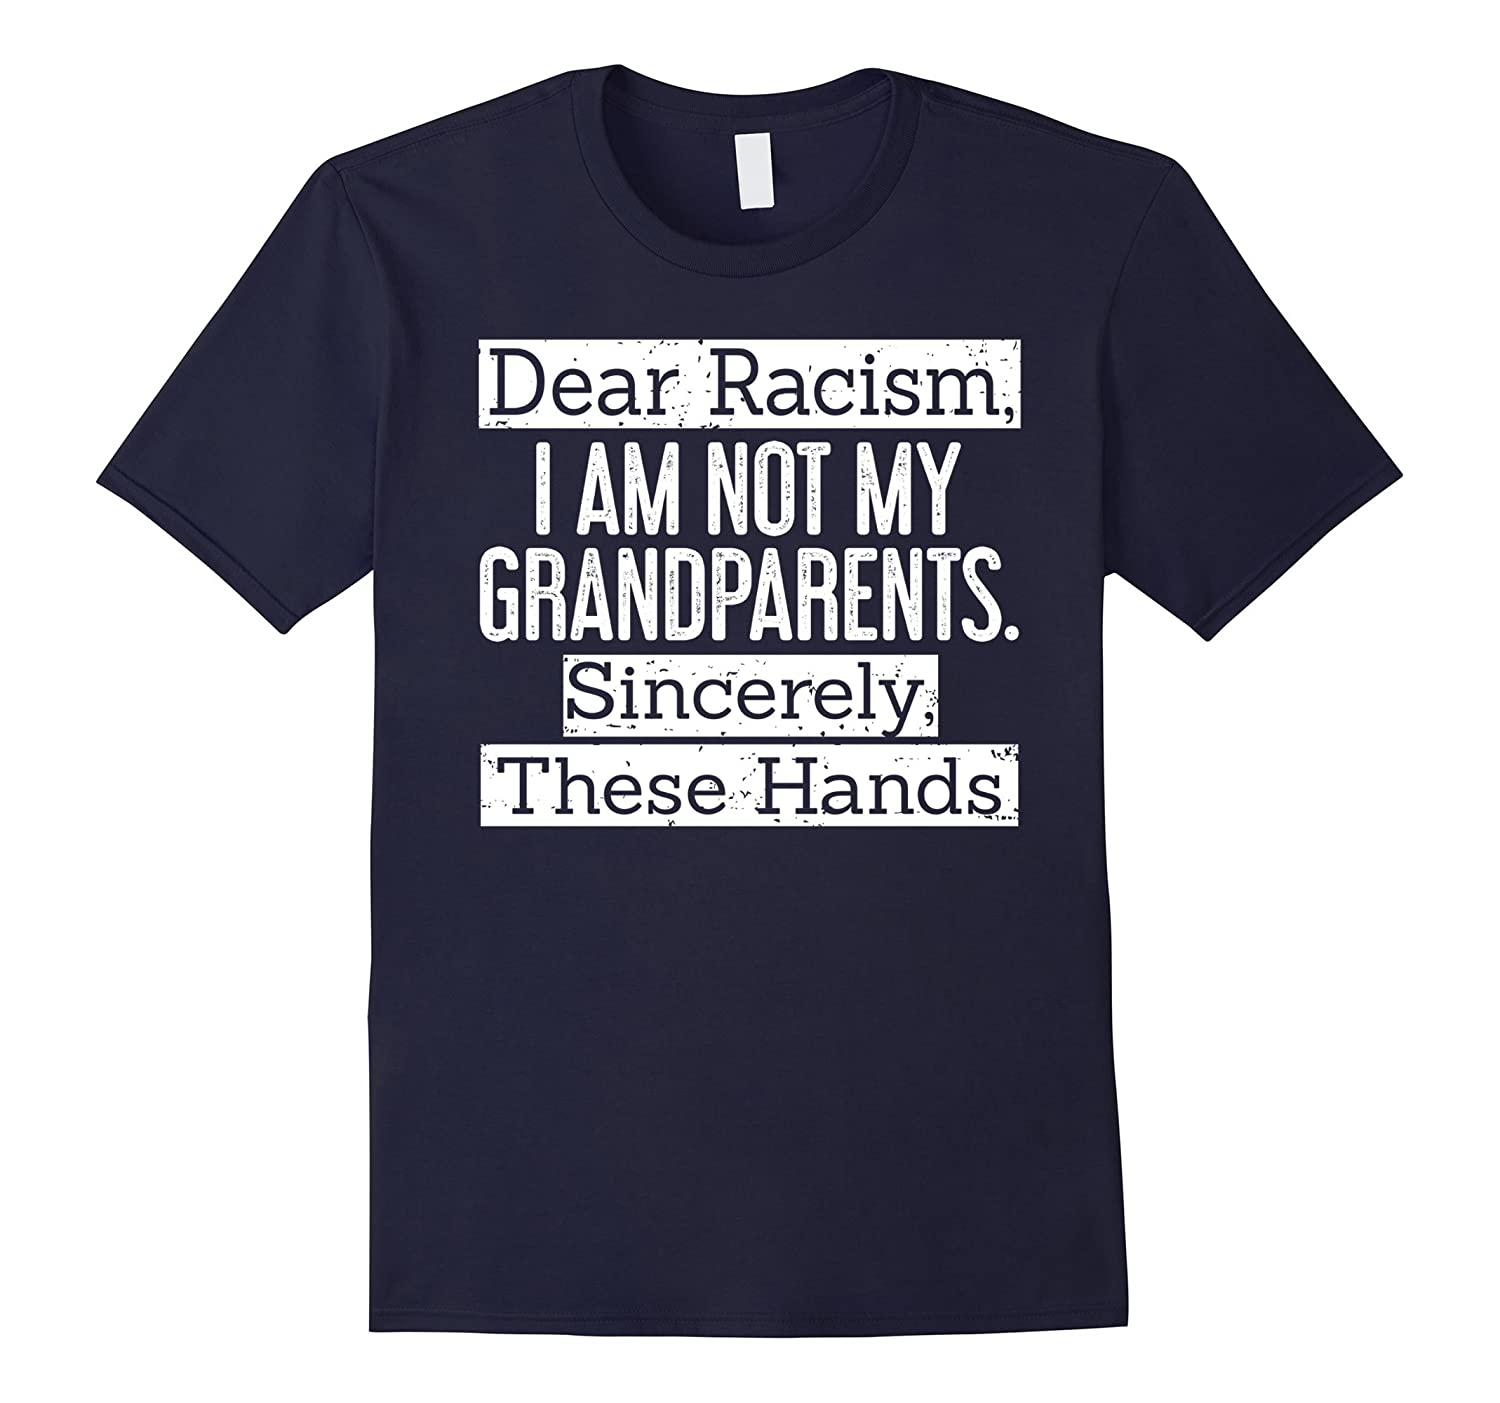 Dear racism I am not my grandparents sincerely these hands-TH